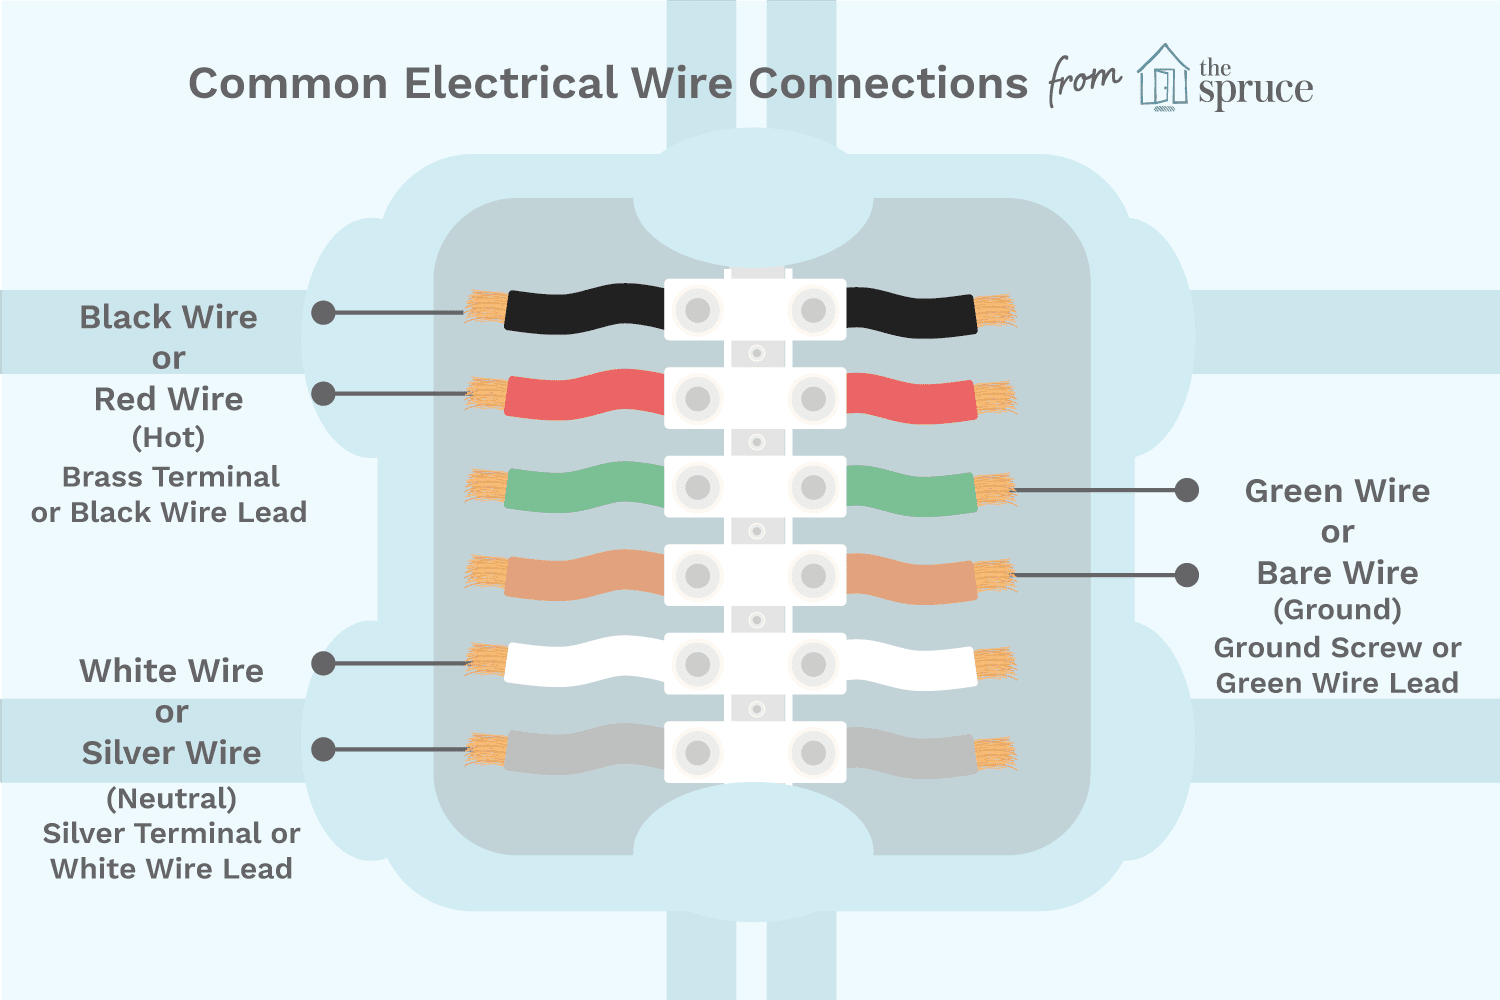 Color Coding Of Electrical Wires And Terminal Screws House Wiring Codes Electric